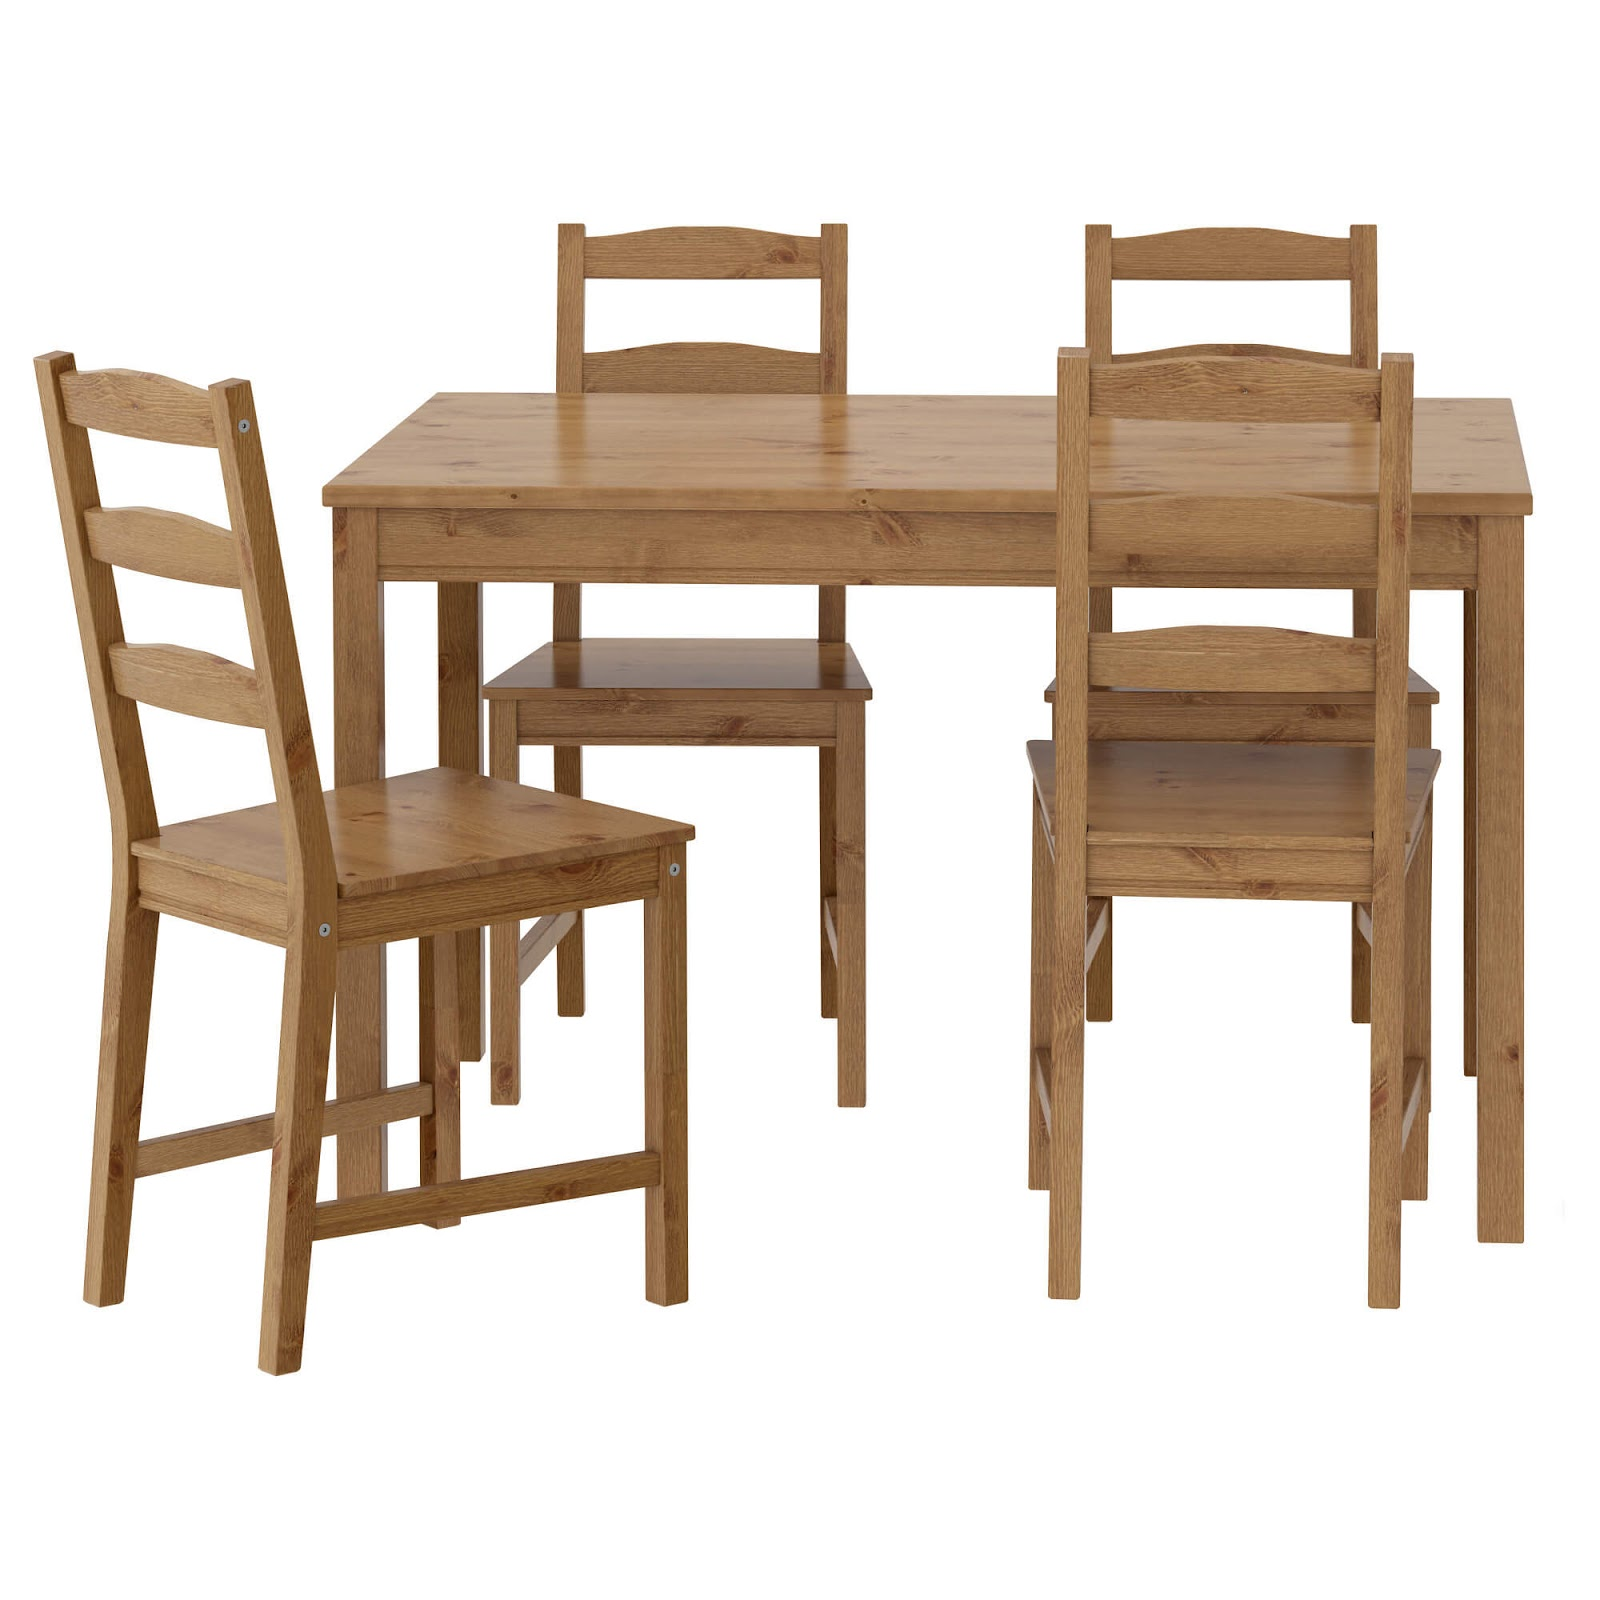 unfinished kitchen chairs colorful wooden 8 43 dining ideas